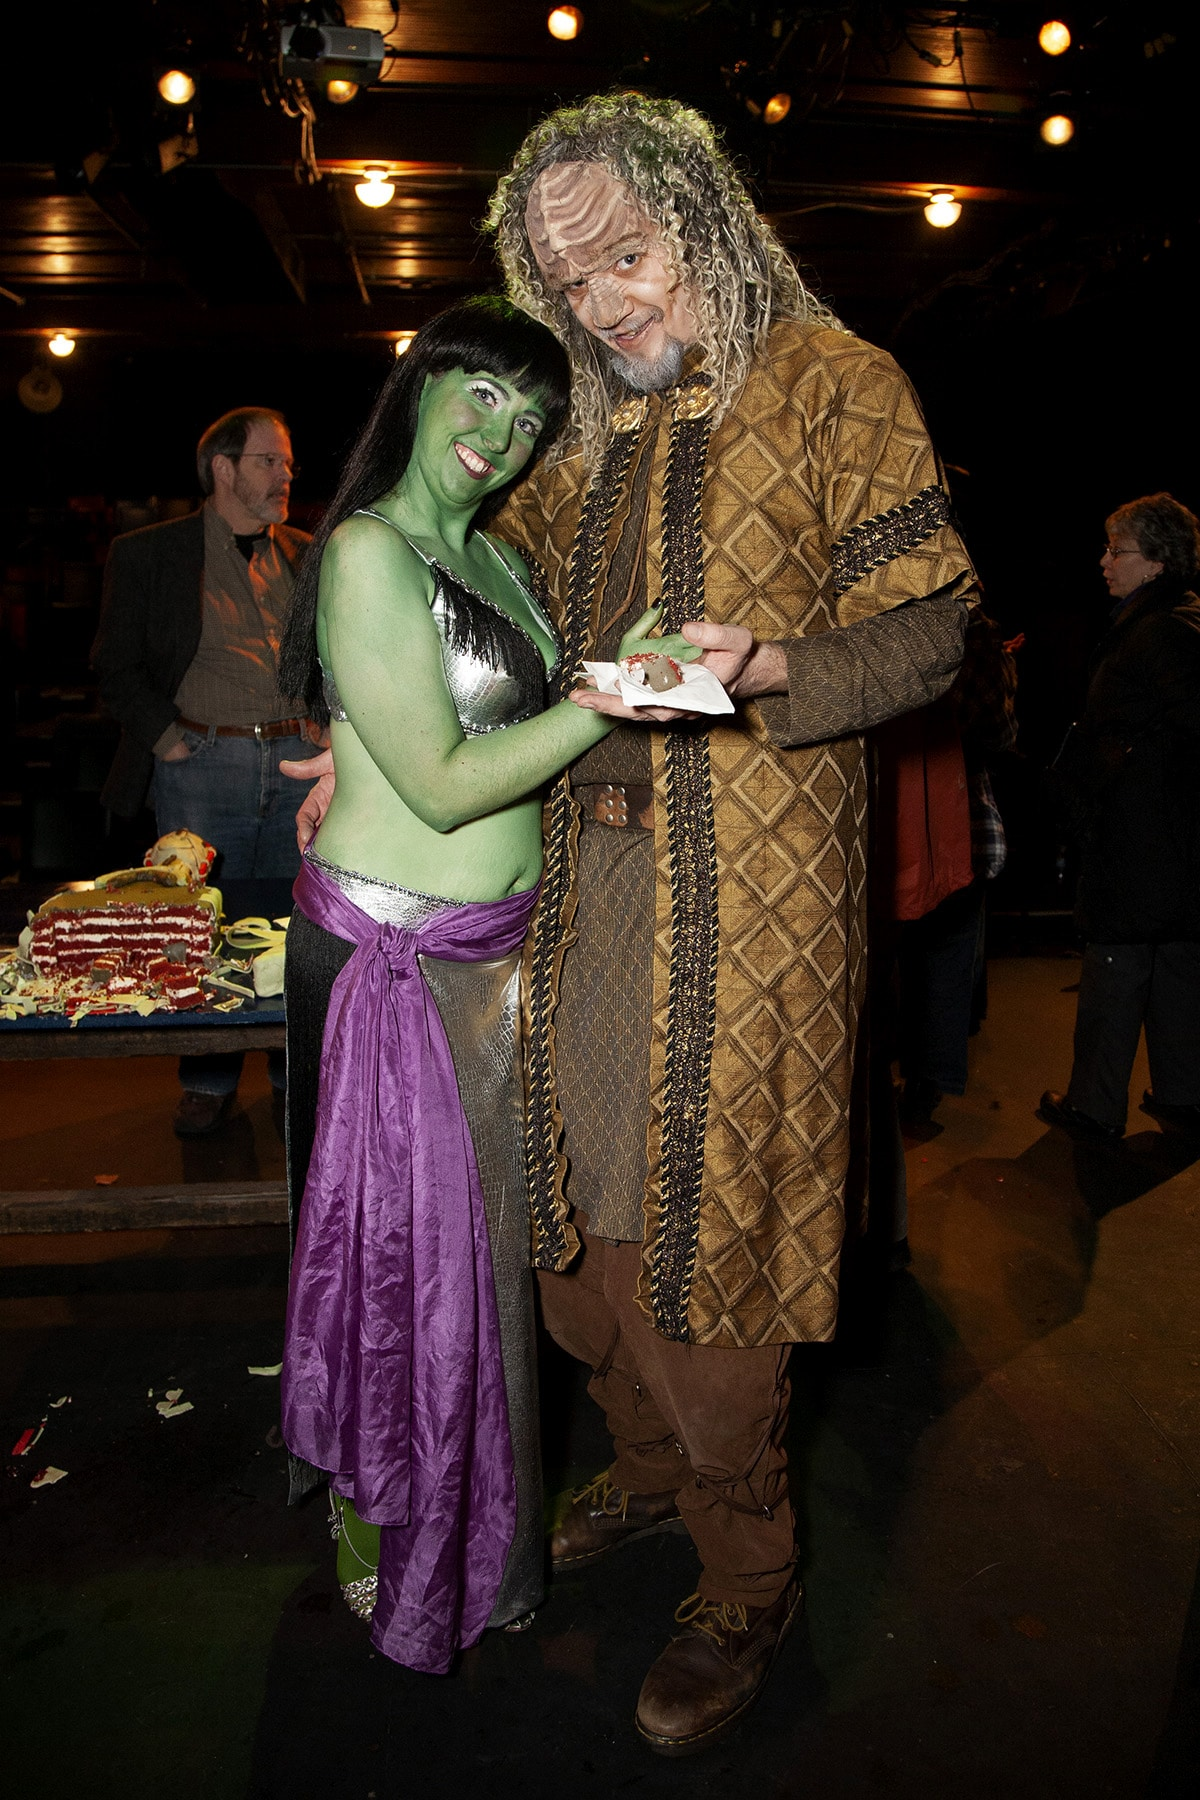 A tall Klingon poses with an Orion dancer.